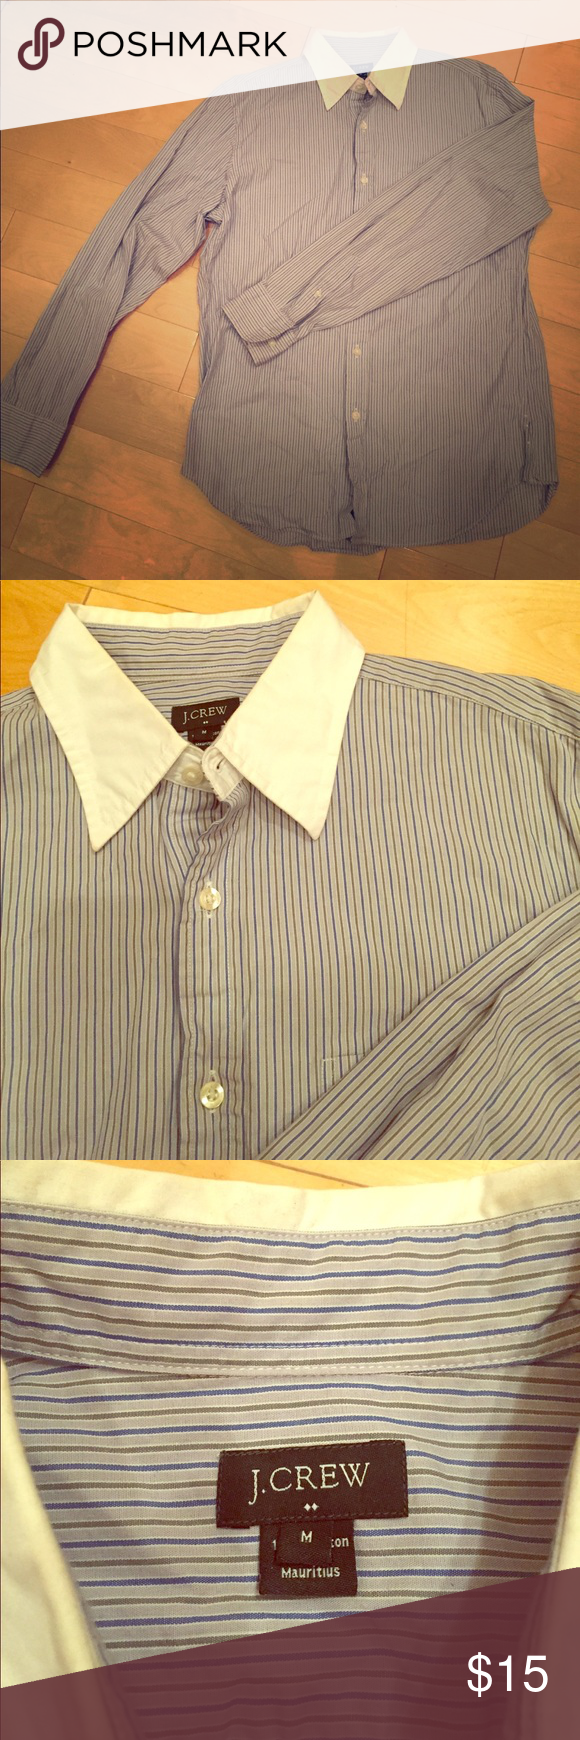 e7841469f Green Striped Shirt White Collar – EDGE Engineering and Consulting ...